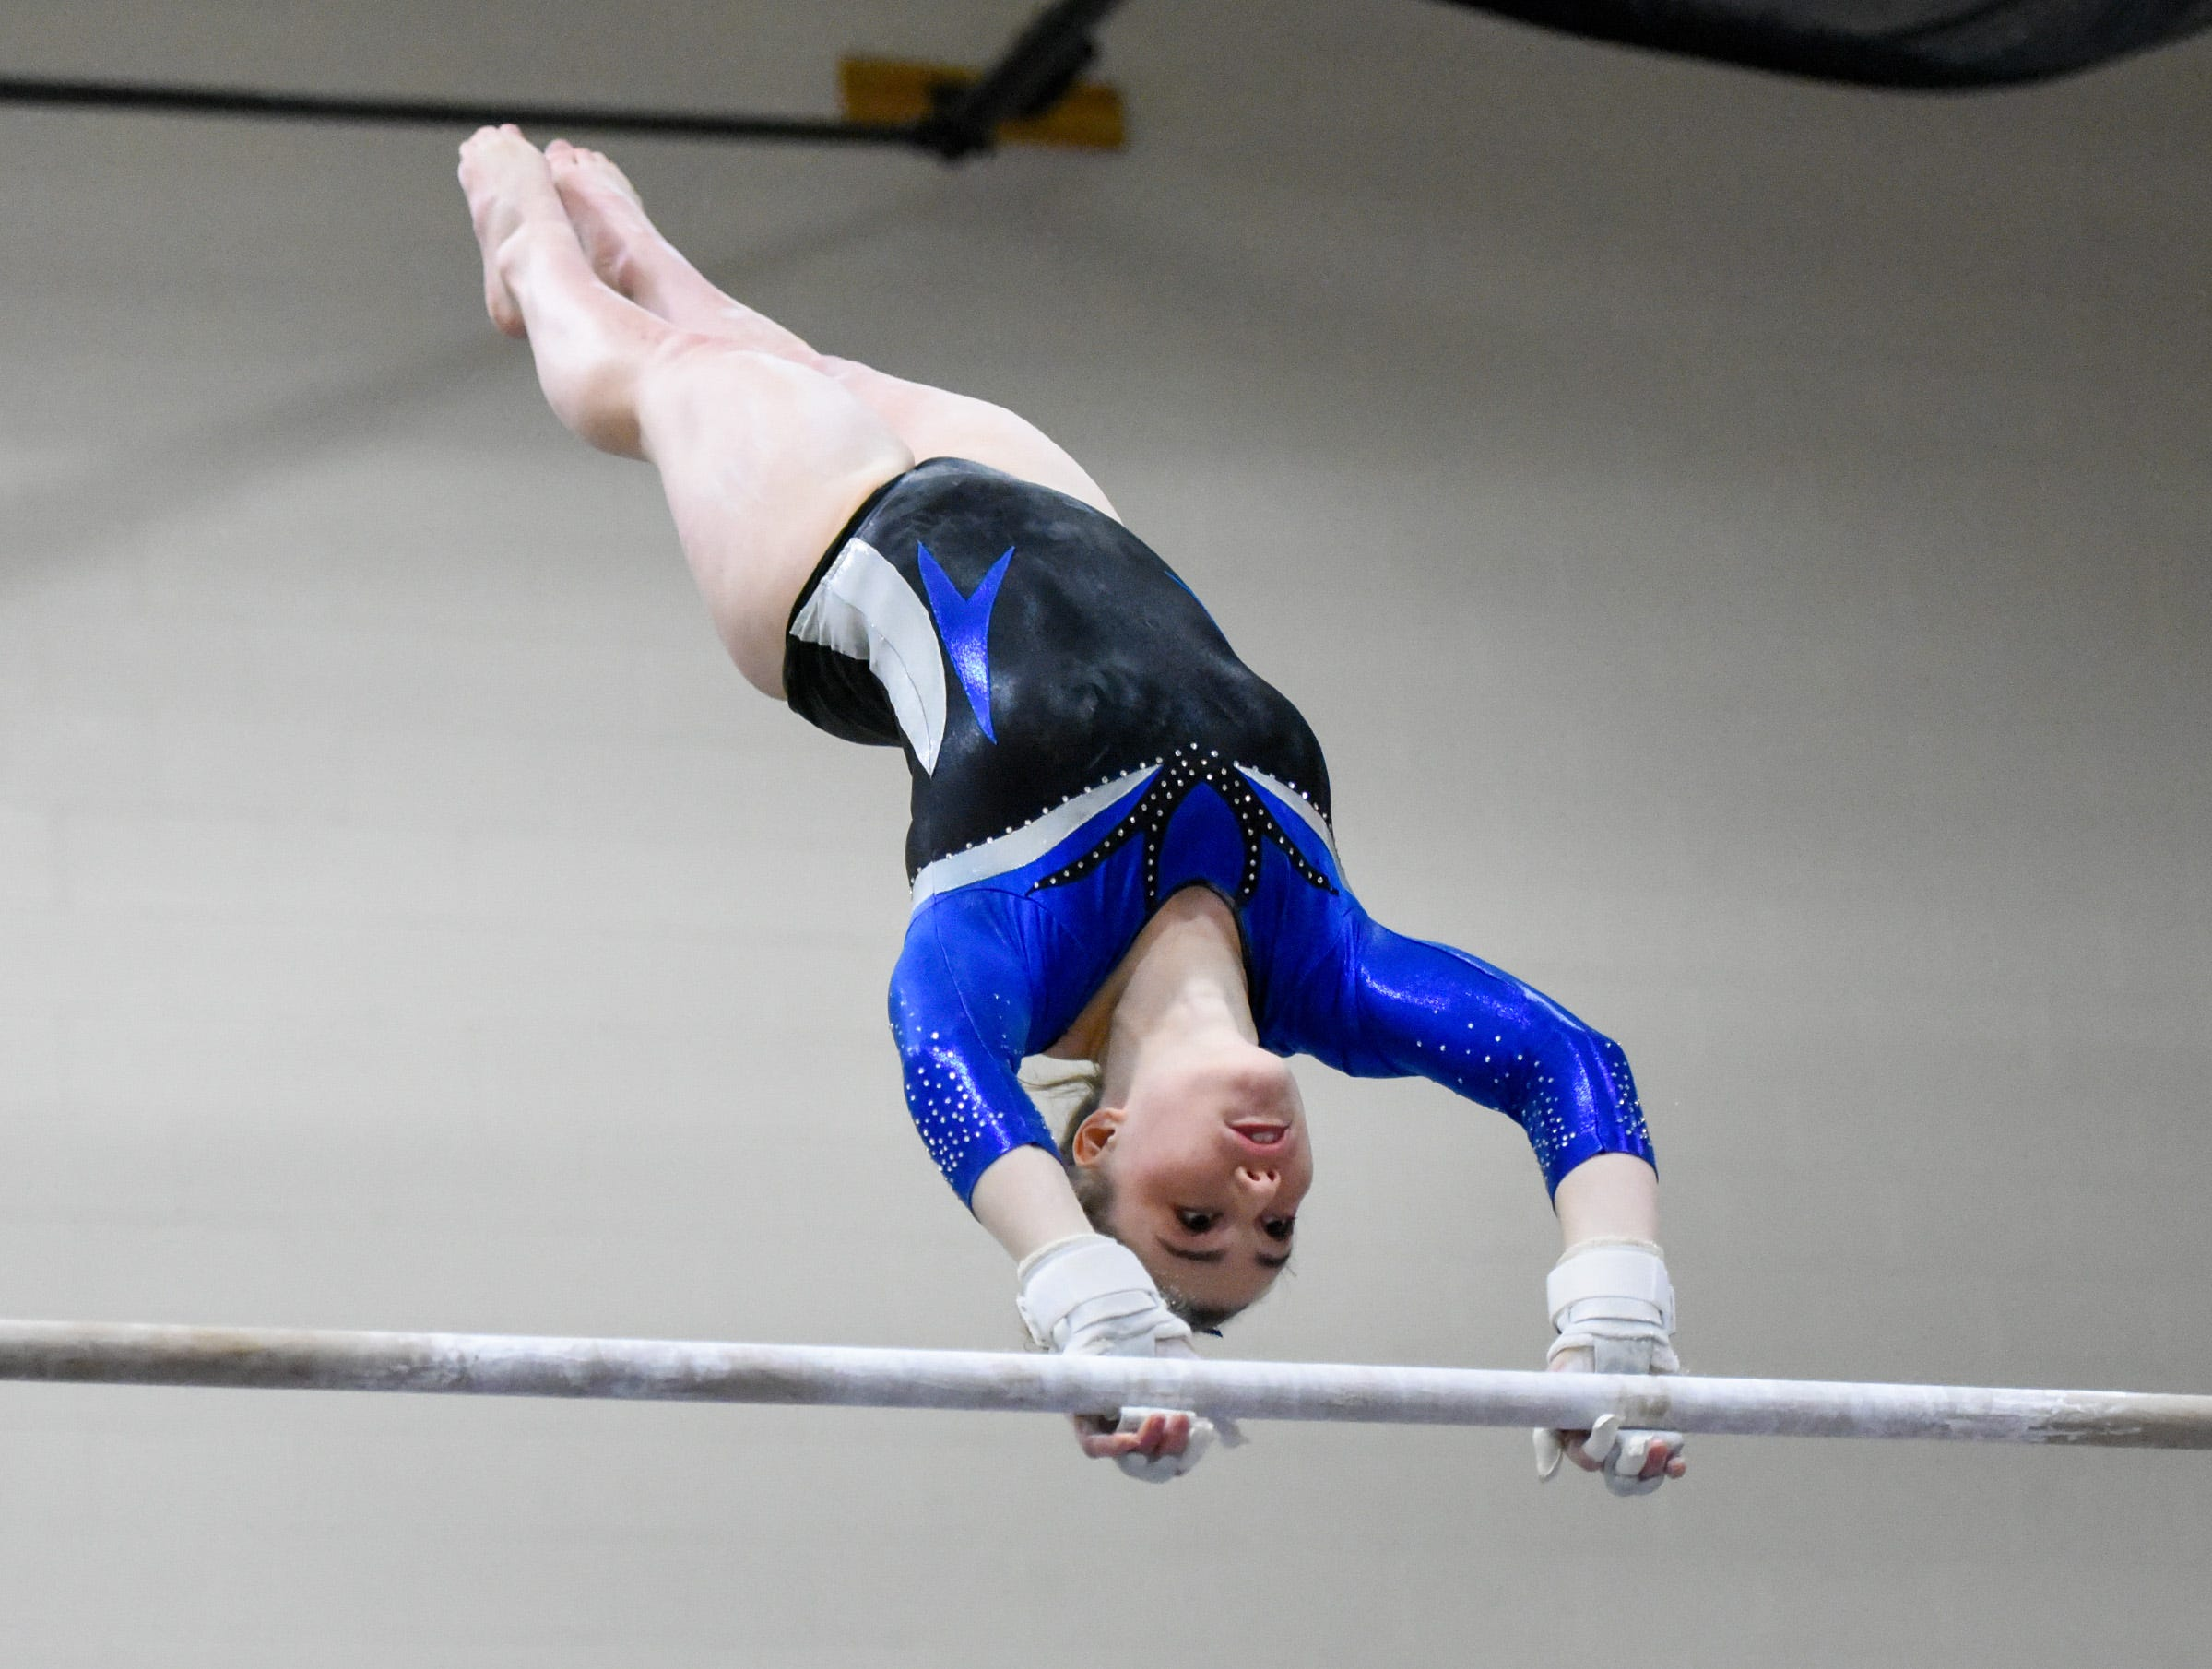 Sartell's Abigail Weber competes on the bars Thursday, Jan. 3, at the Sauk Rapids-Rice High School.